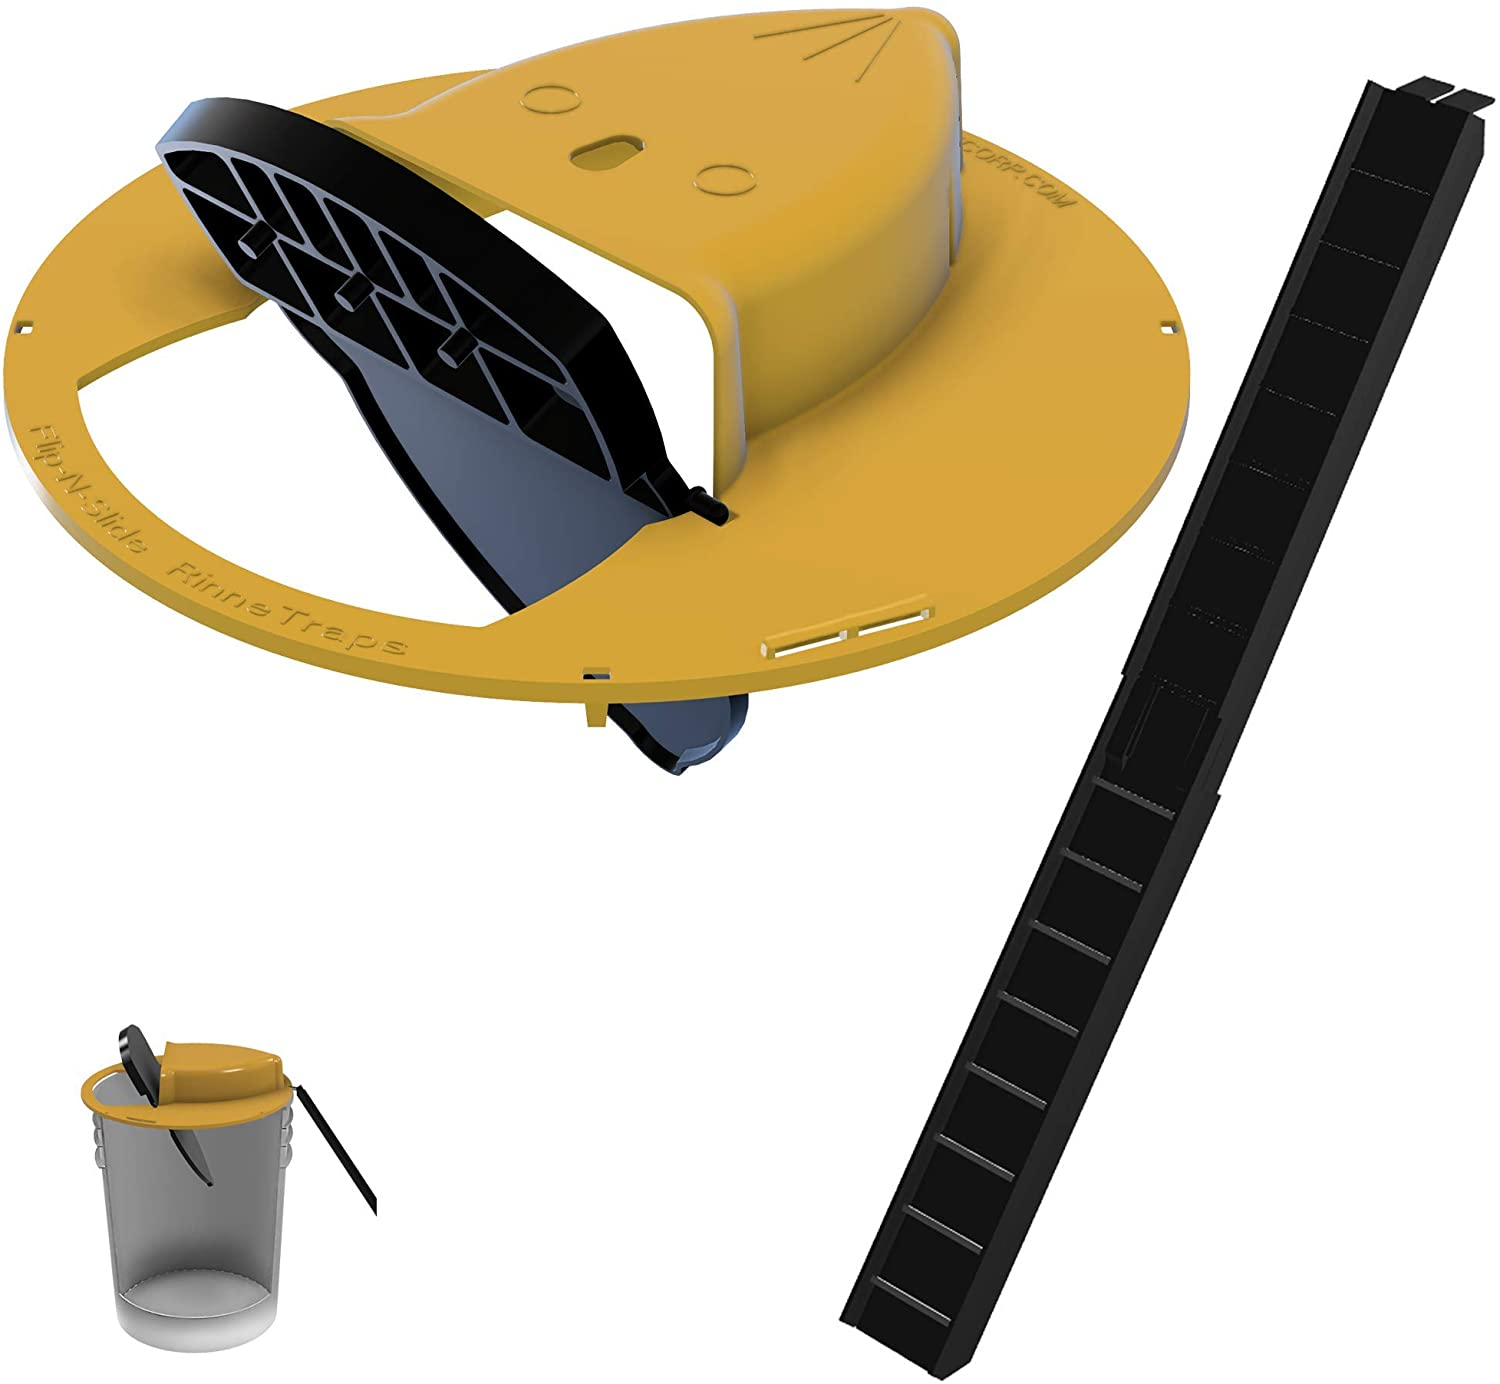 Auto flip mousetrap (buy 2 free shipping)